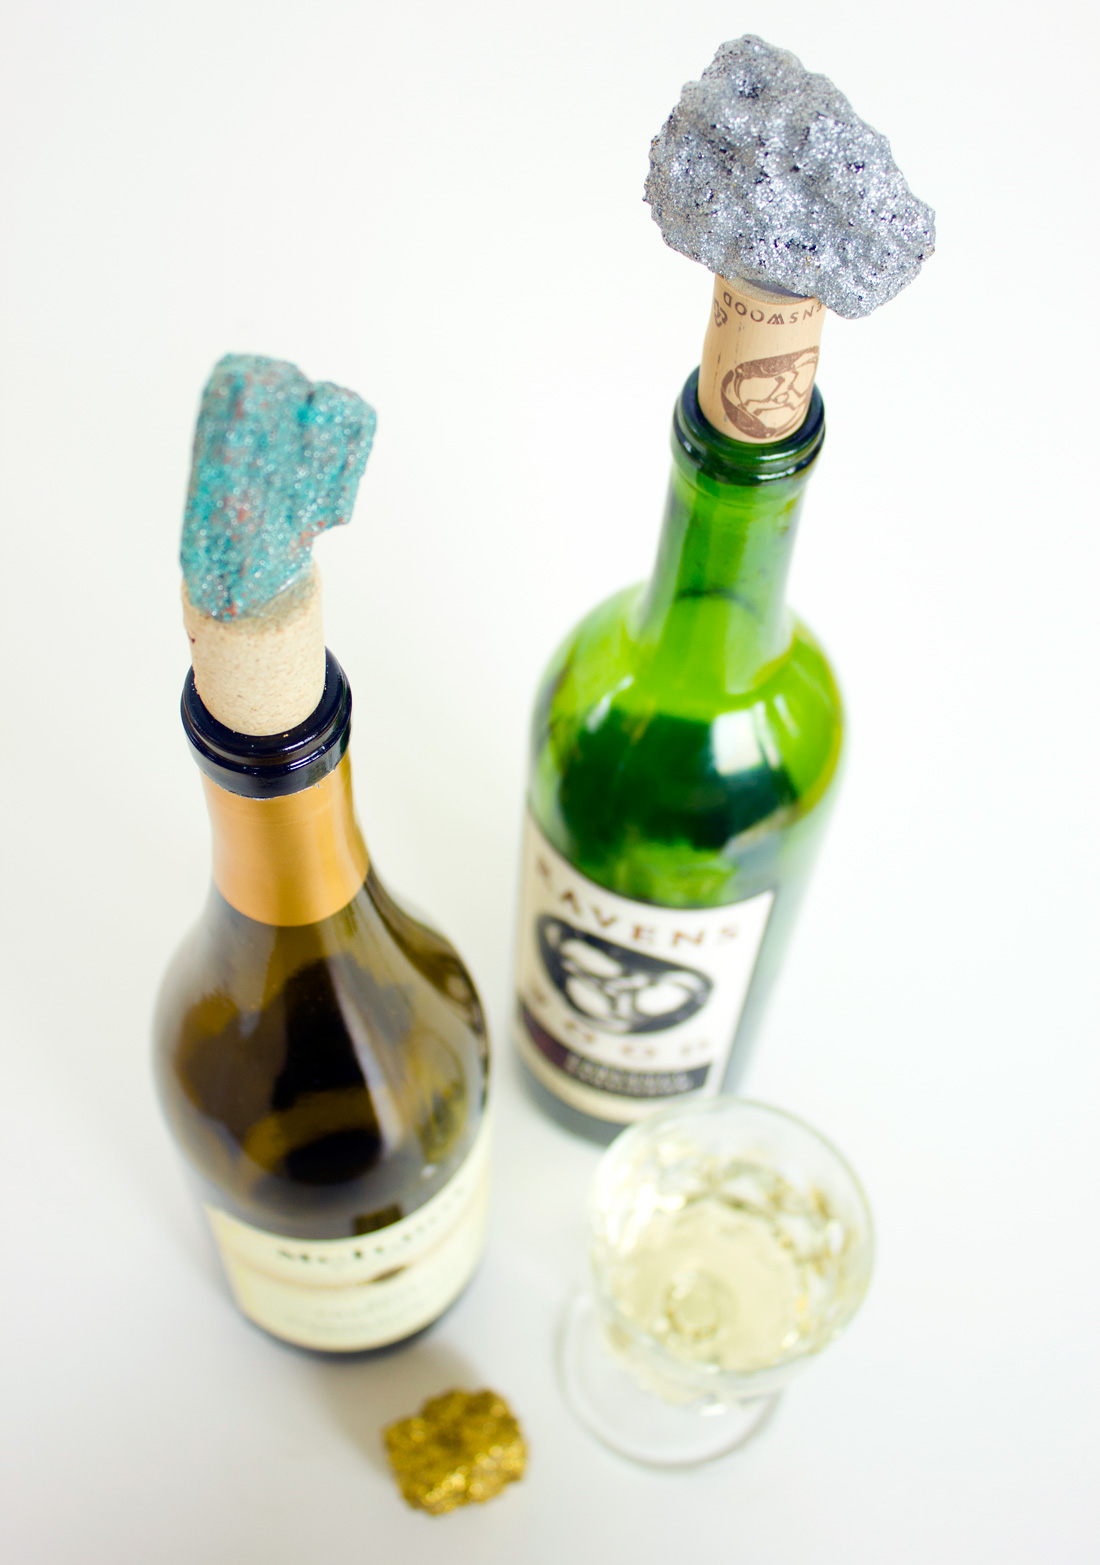 27 Insanely Beautiful Homemade Wine Bottle Cork Projects